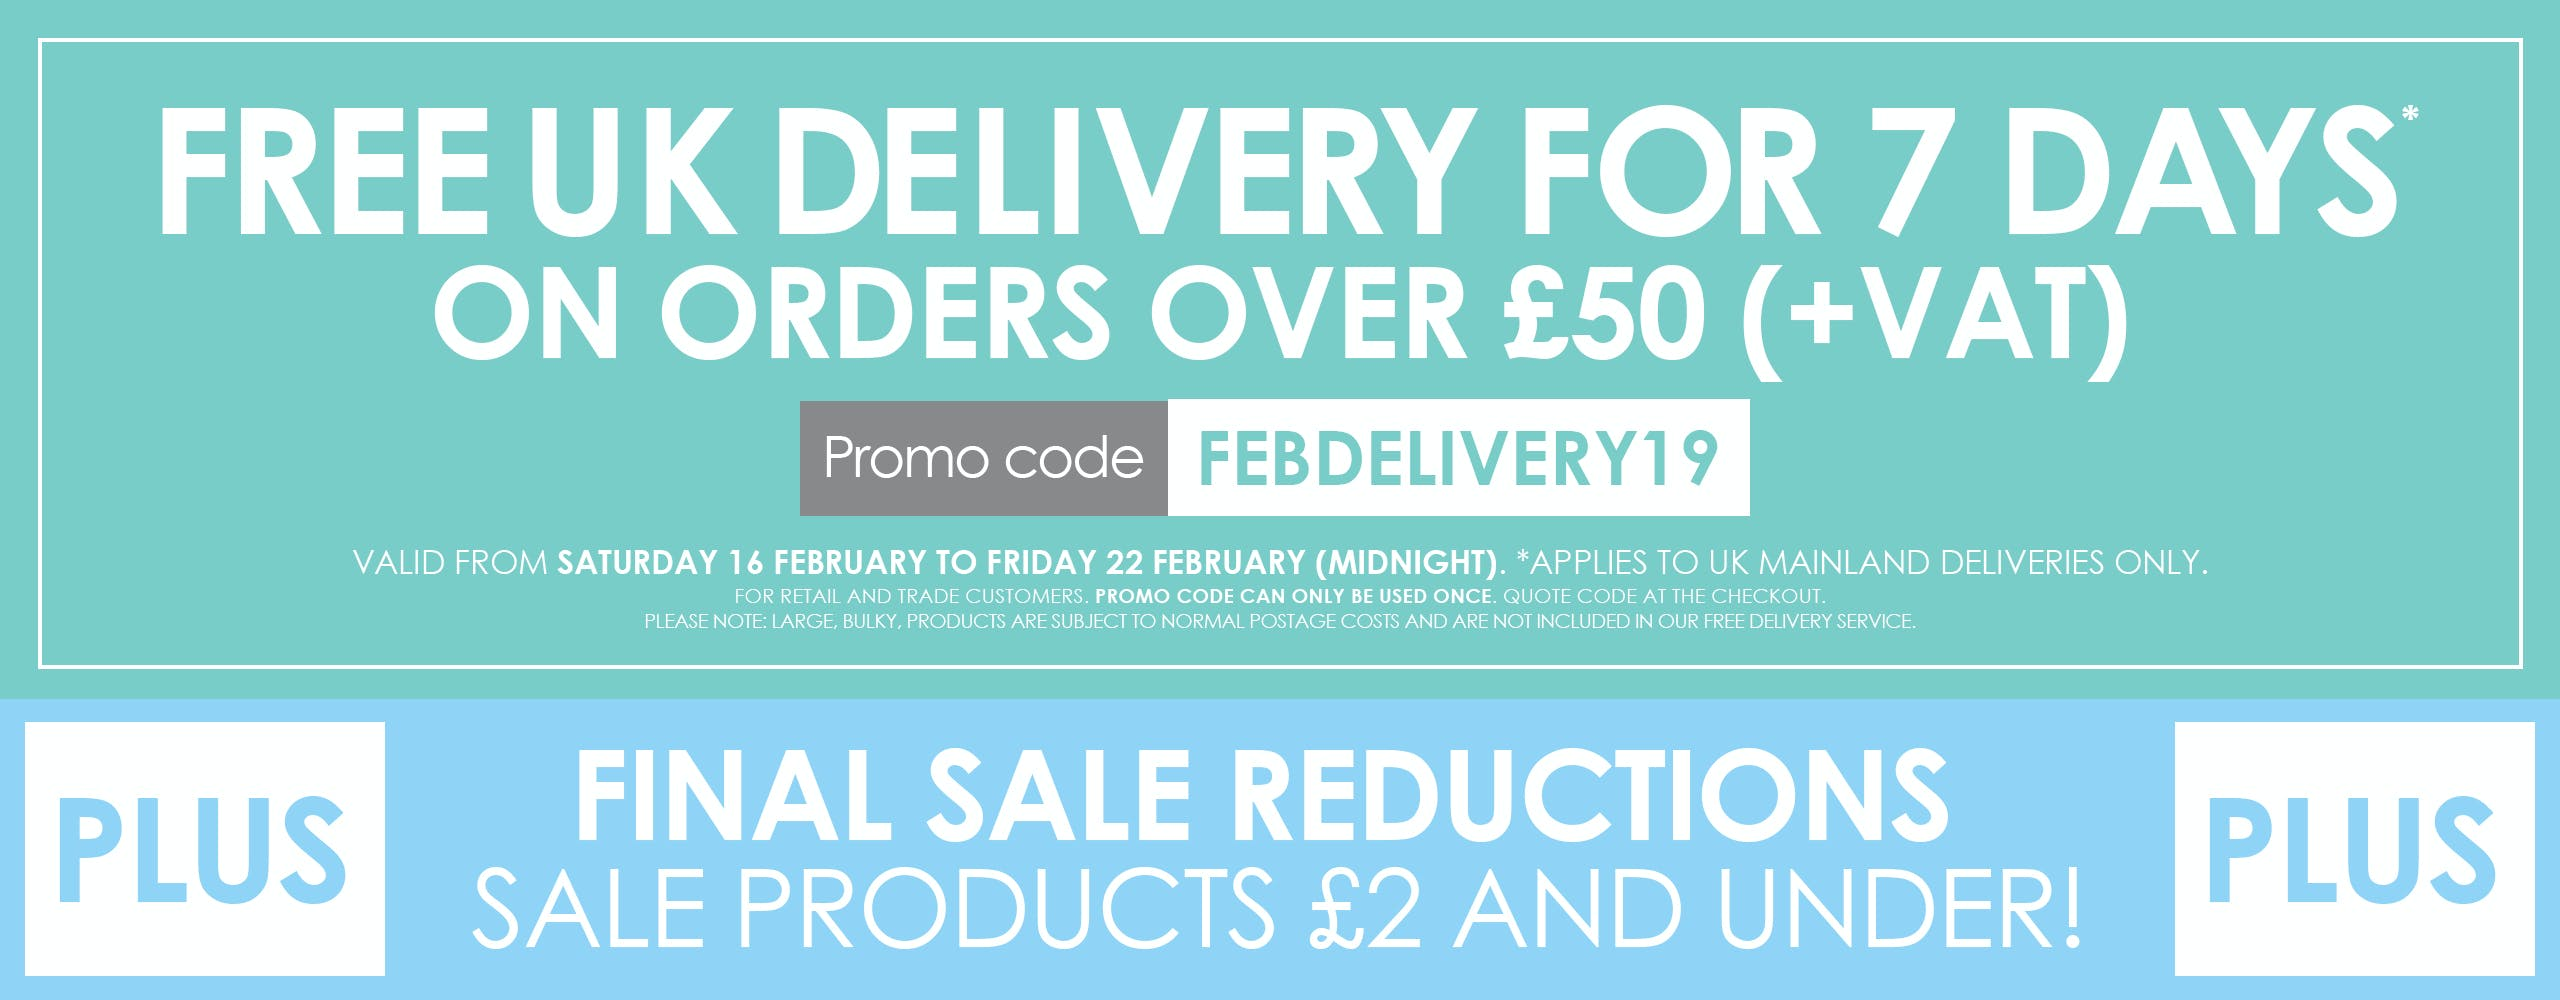 FREE UK delivery for 7 days on all orders over £50 plus, final sale reductions!